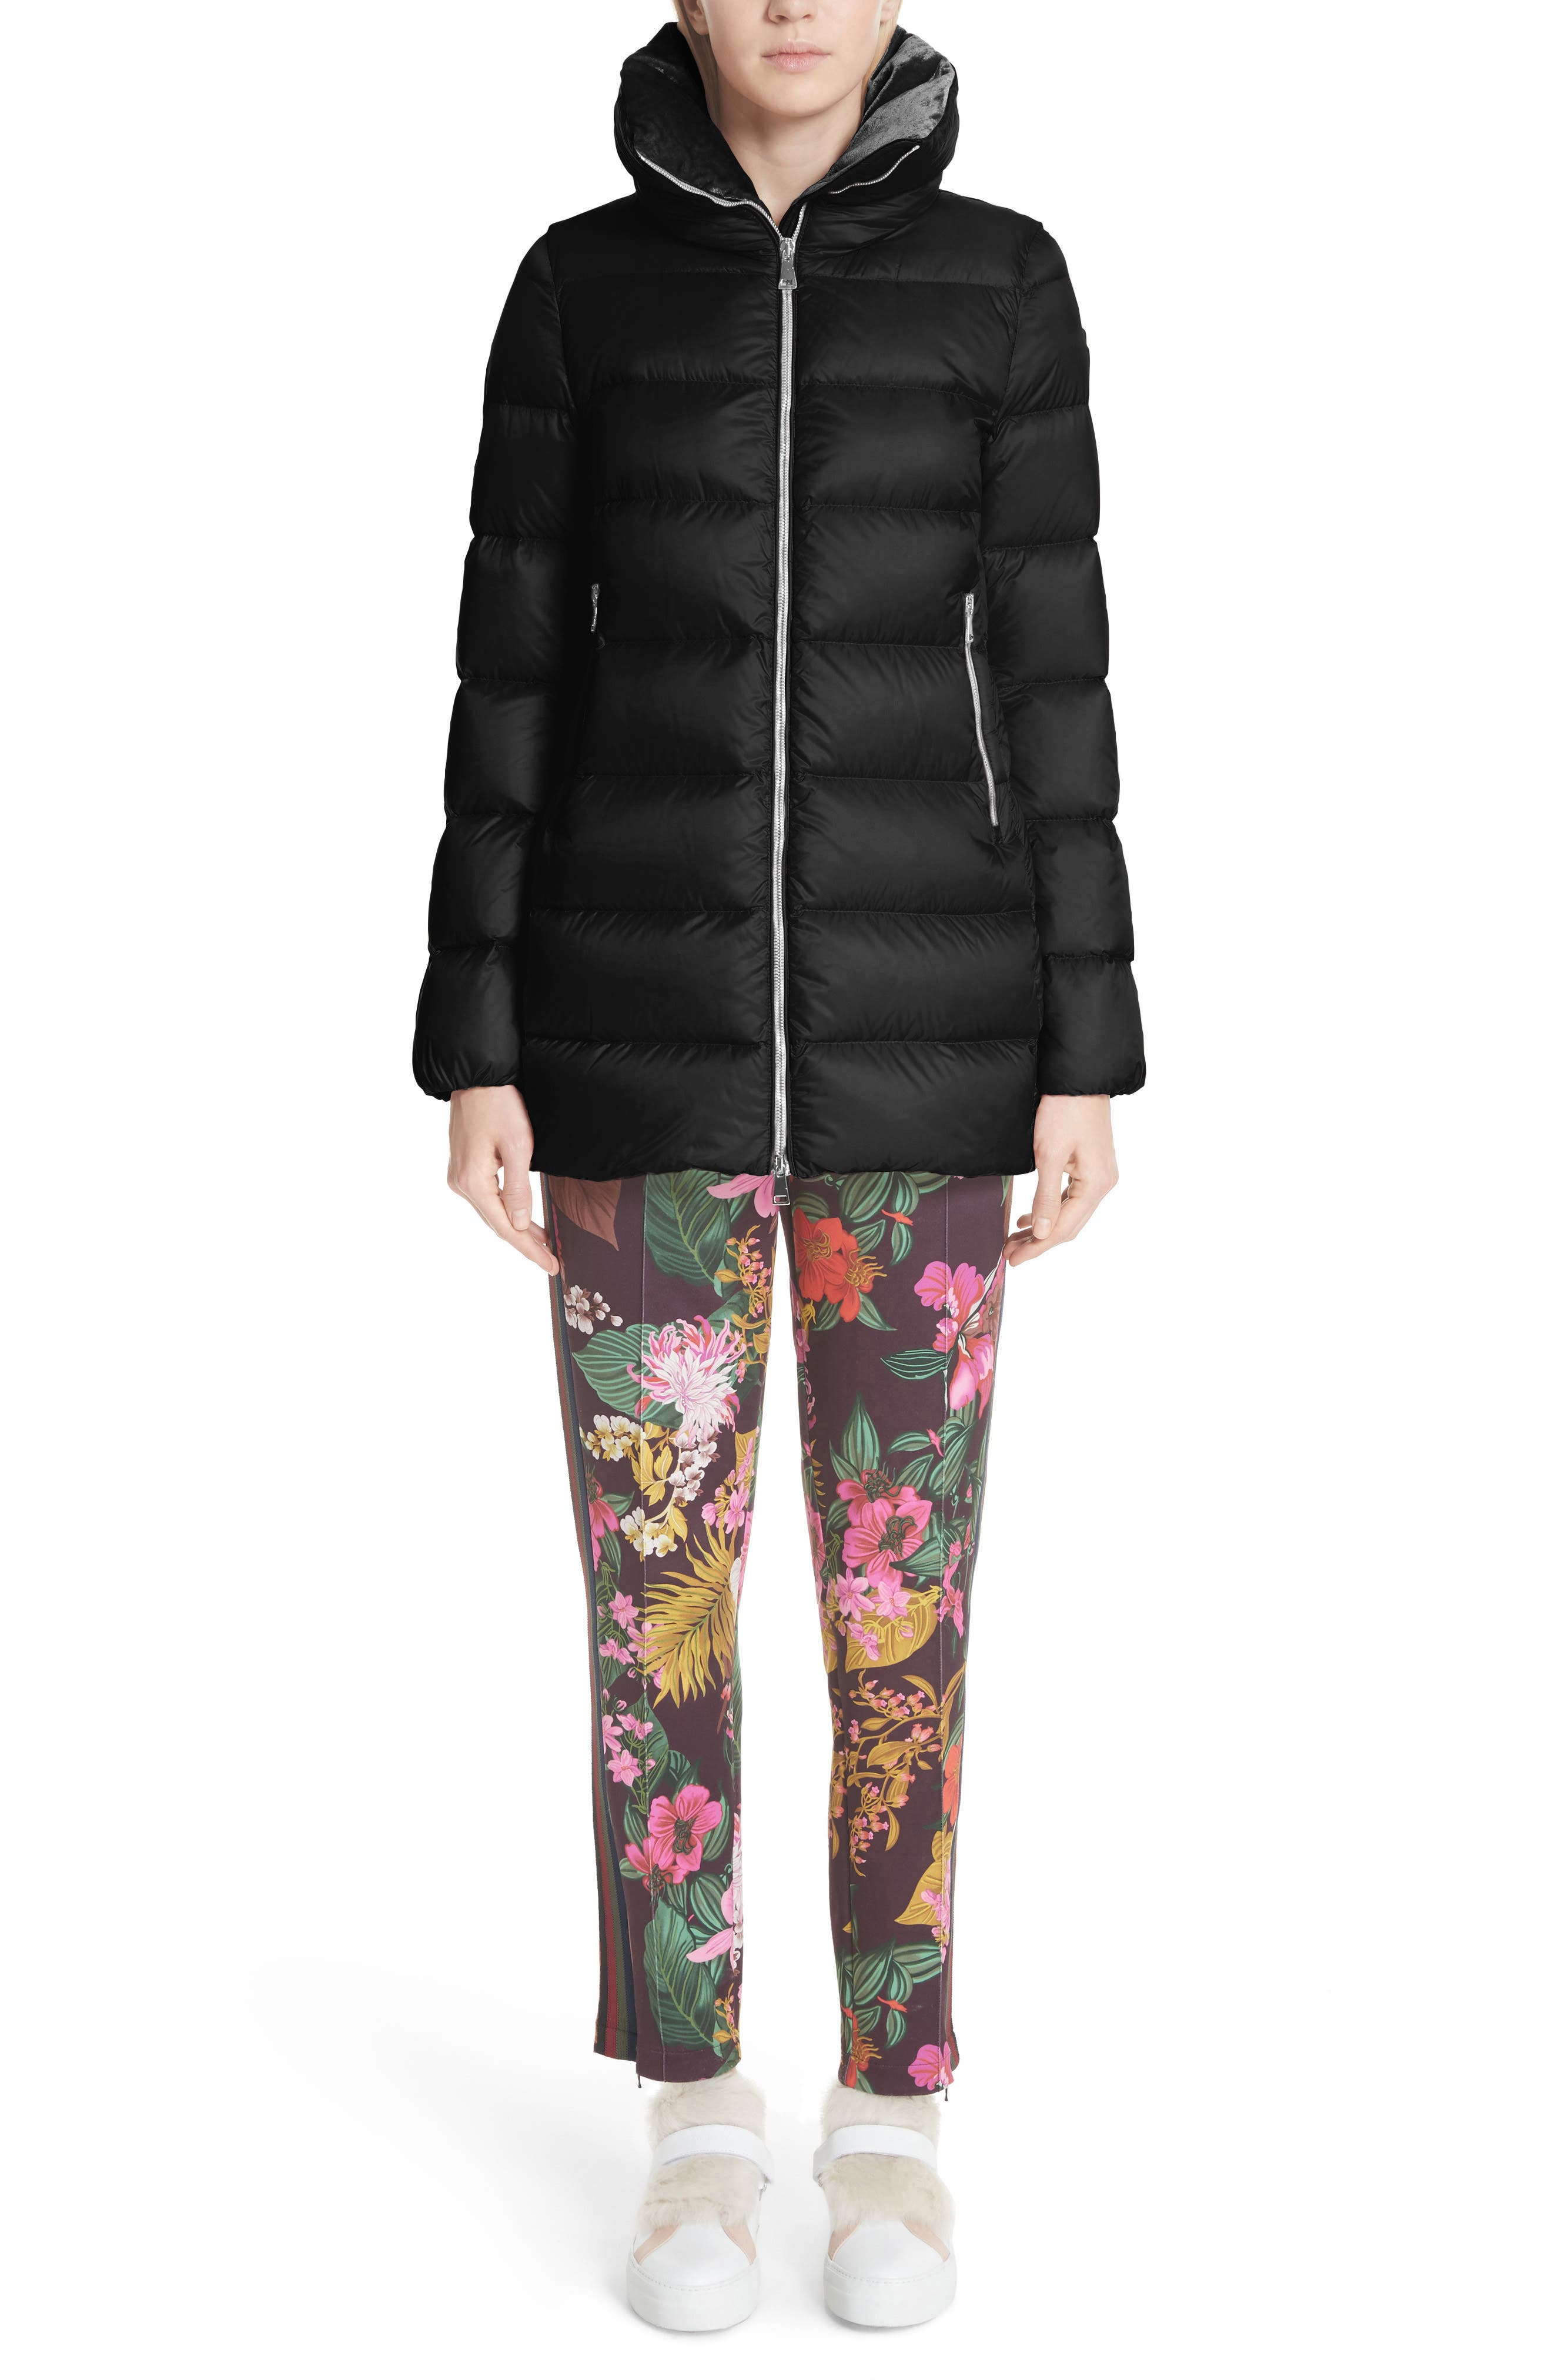 MONCLER, Torcol Quilted Down Jacket, Alternate thumbnail 7, color, BLACK